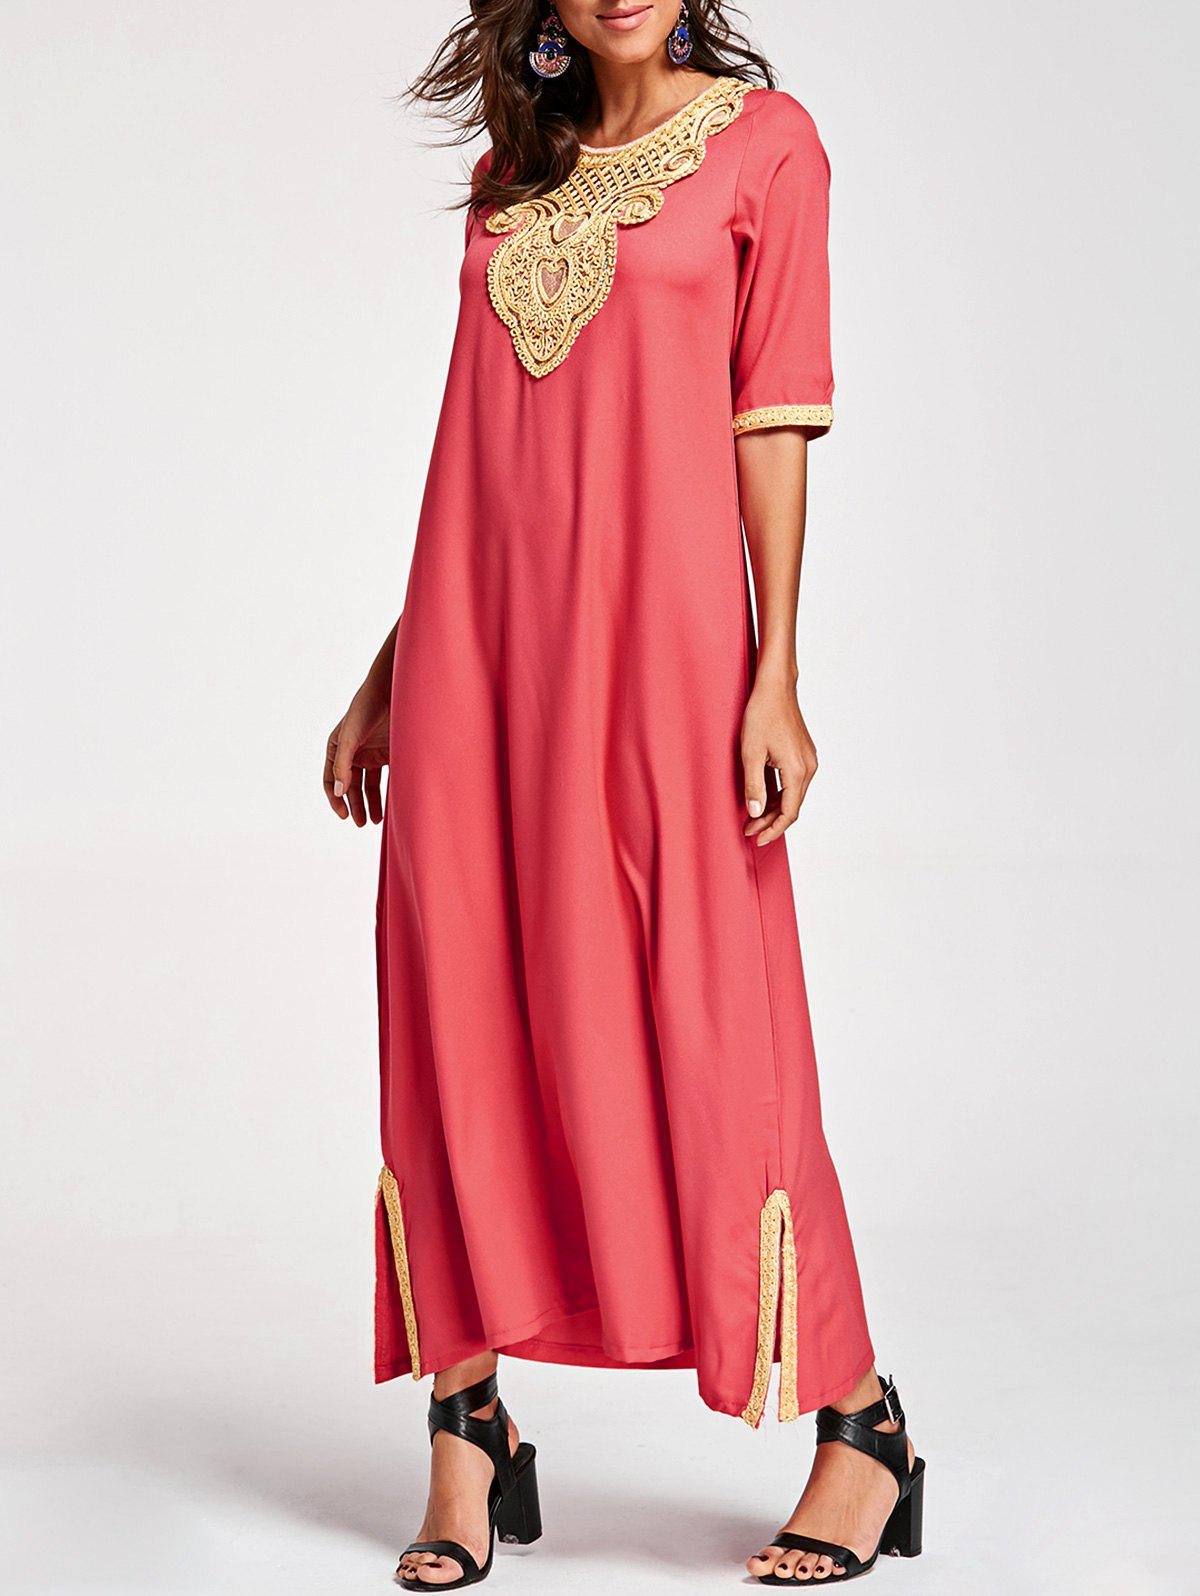 Embroidery Ankle Length Bohemian Dress - WATERMELON RED L